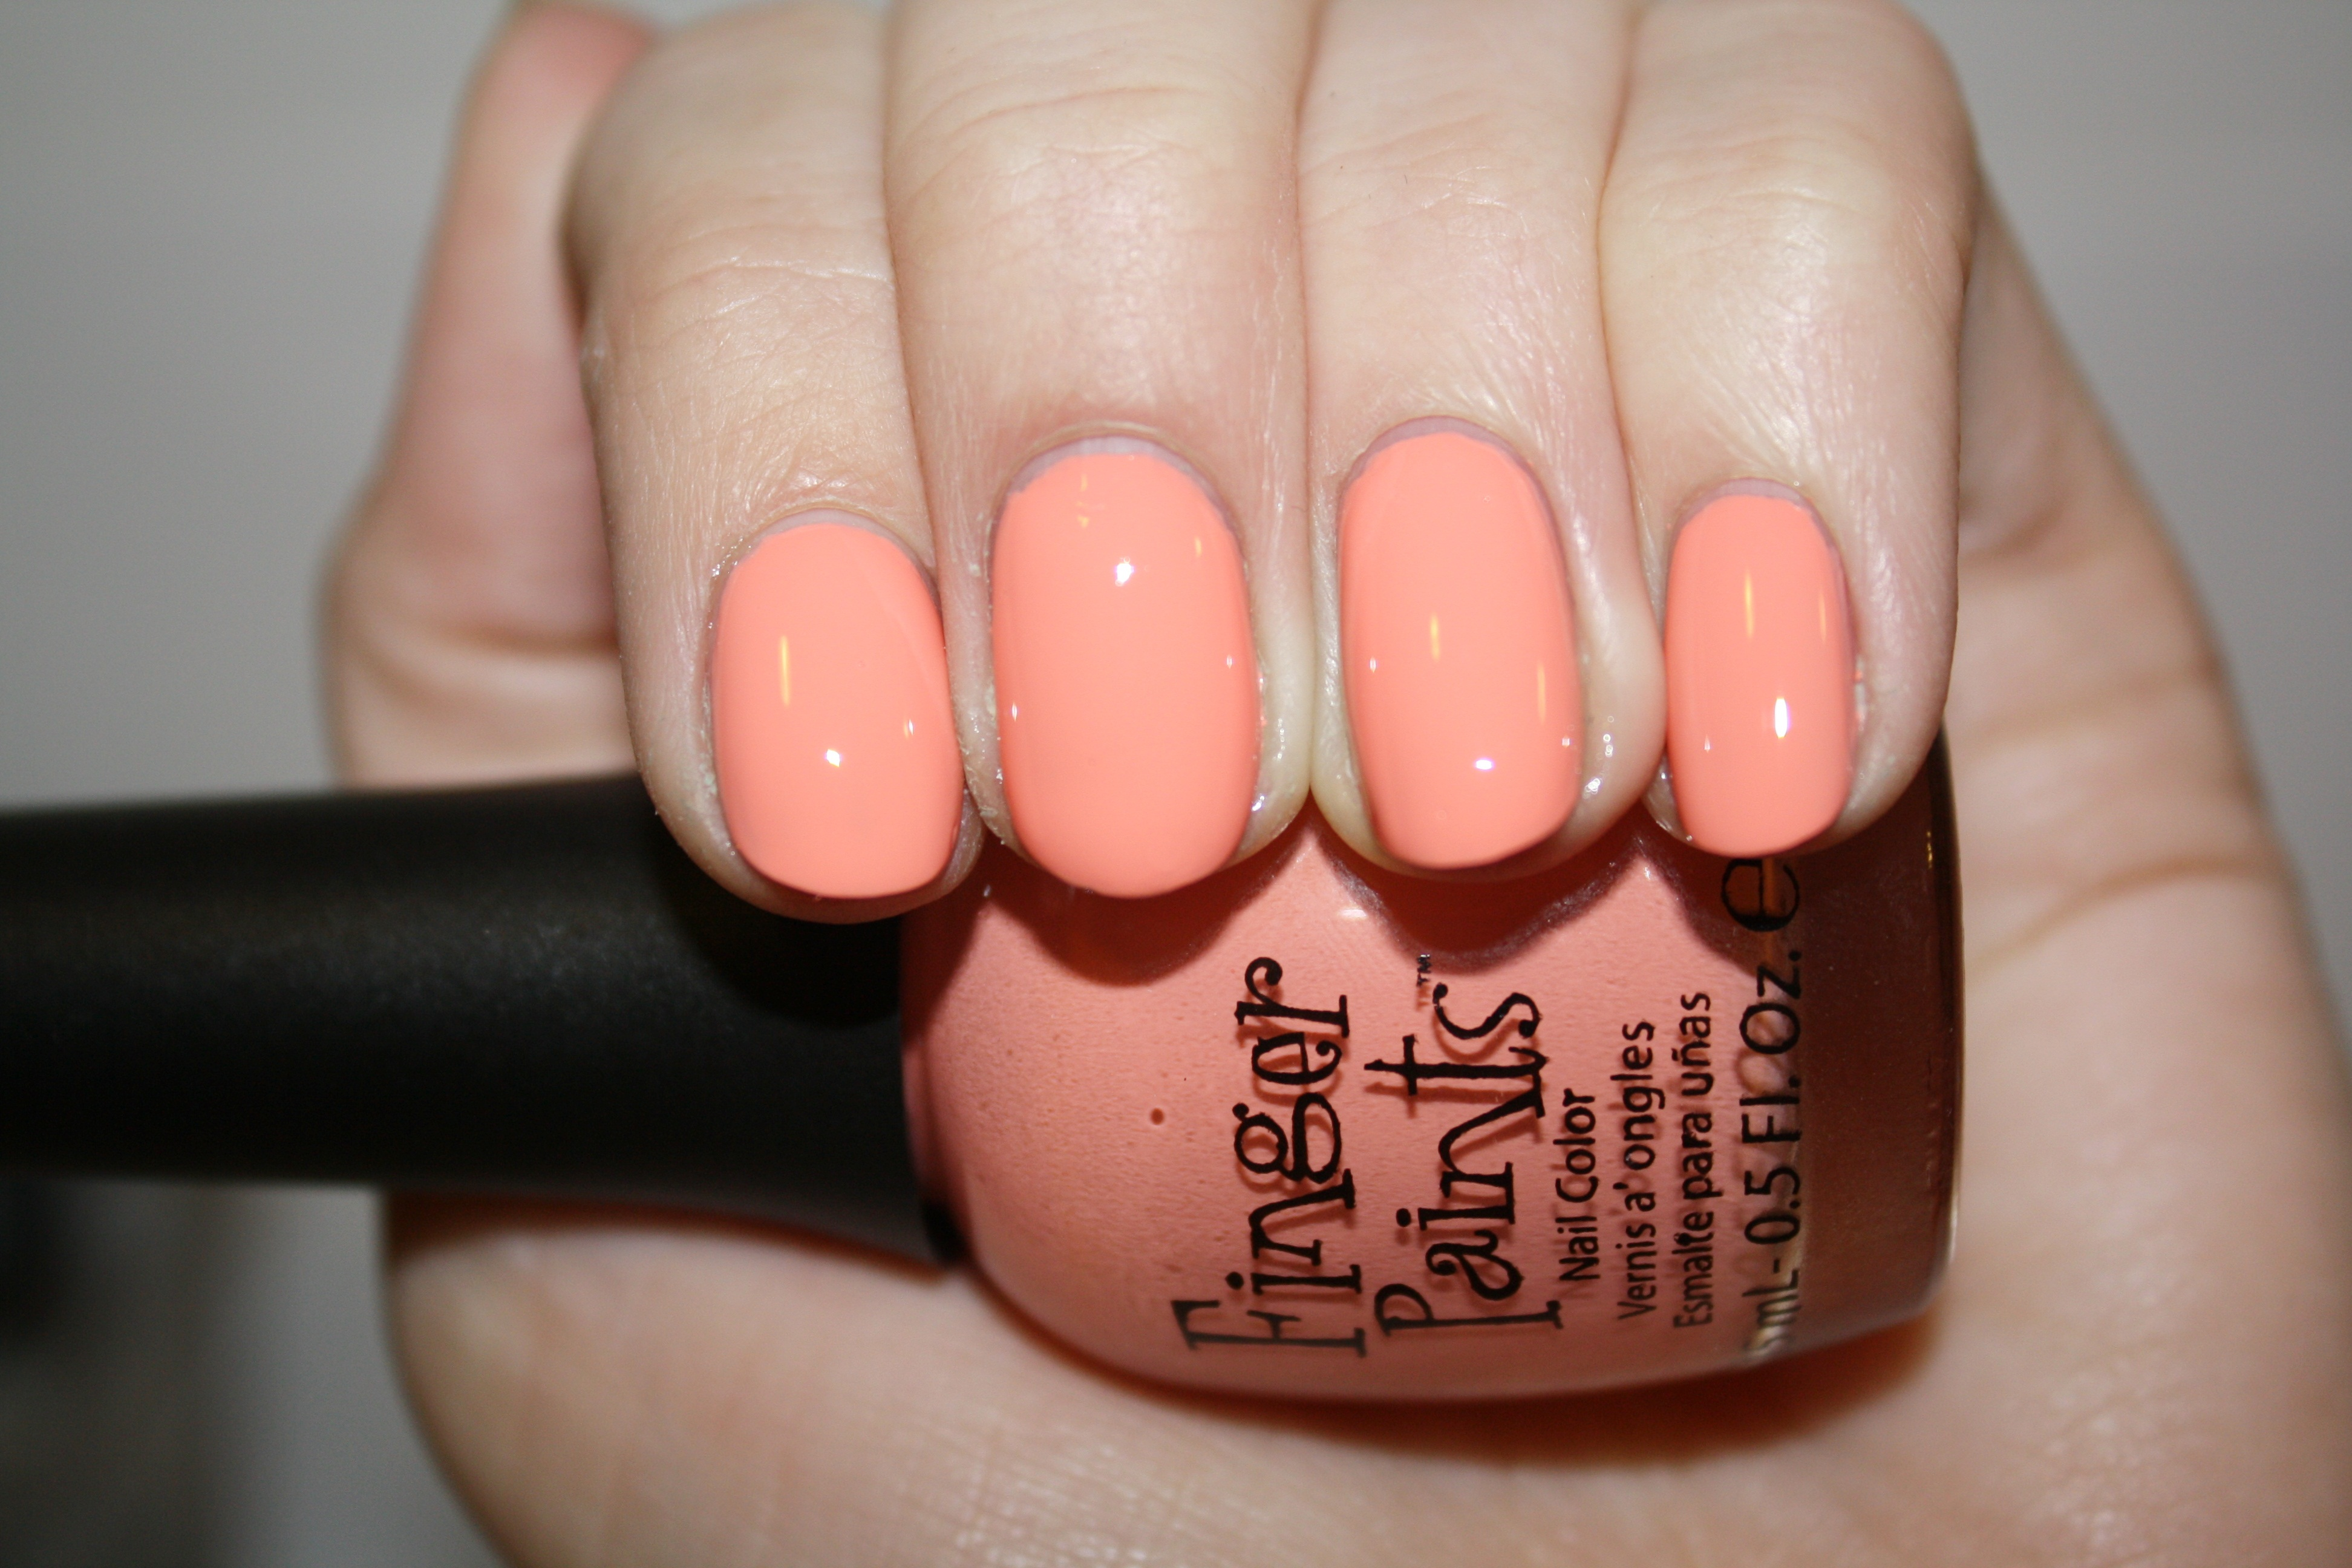 SWATCH REVIEW: FINGER PAINTS – GUMDROPS & LOLLIPOPS | polishyoupretty